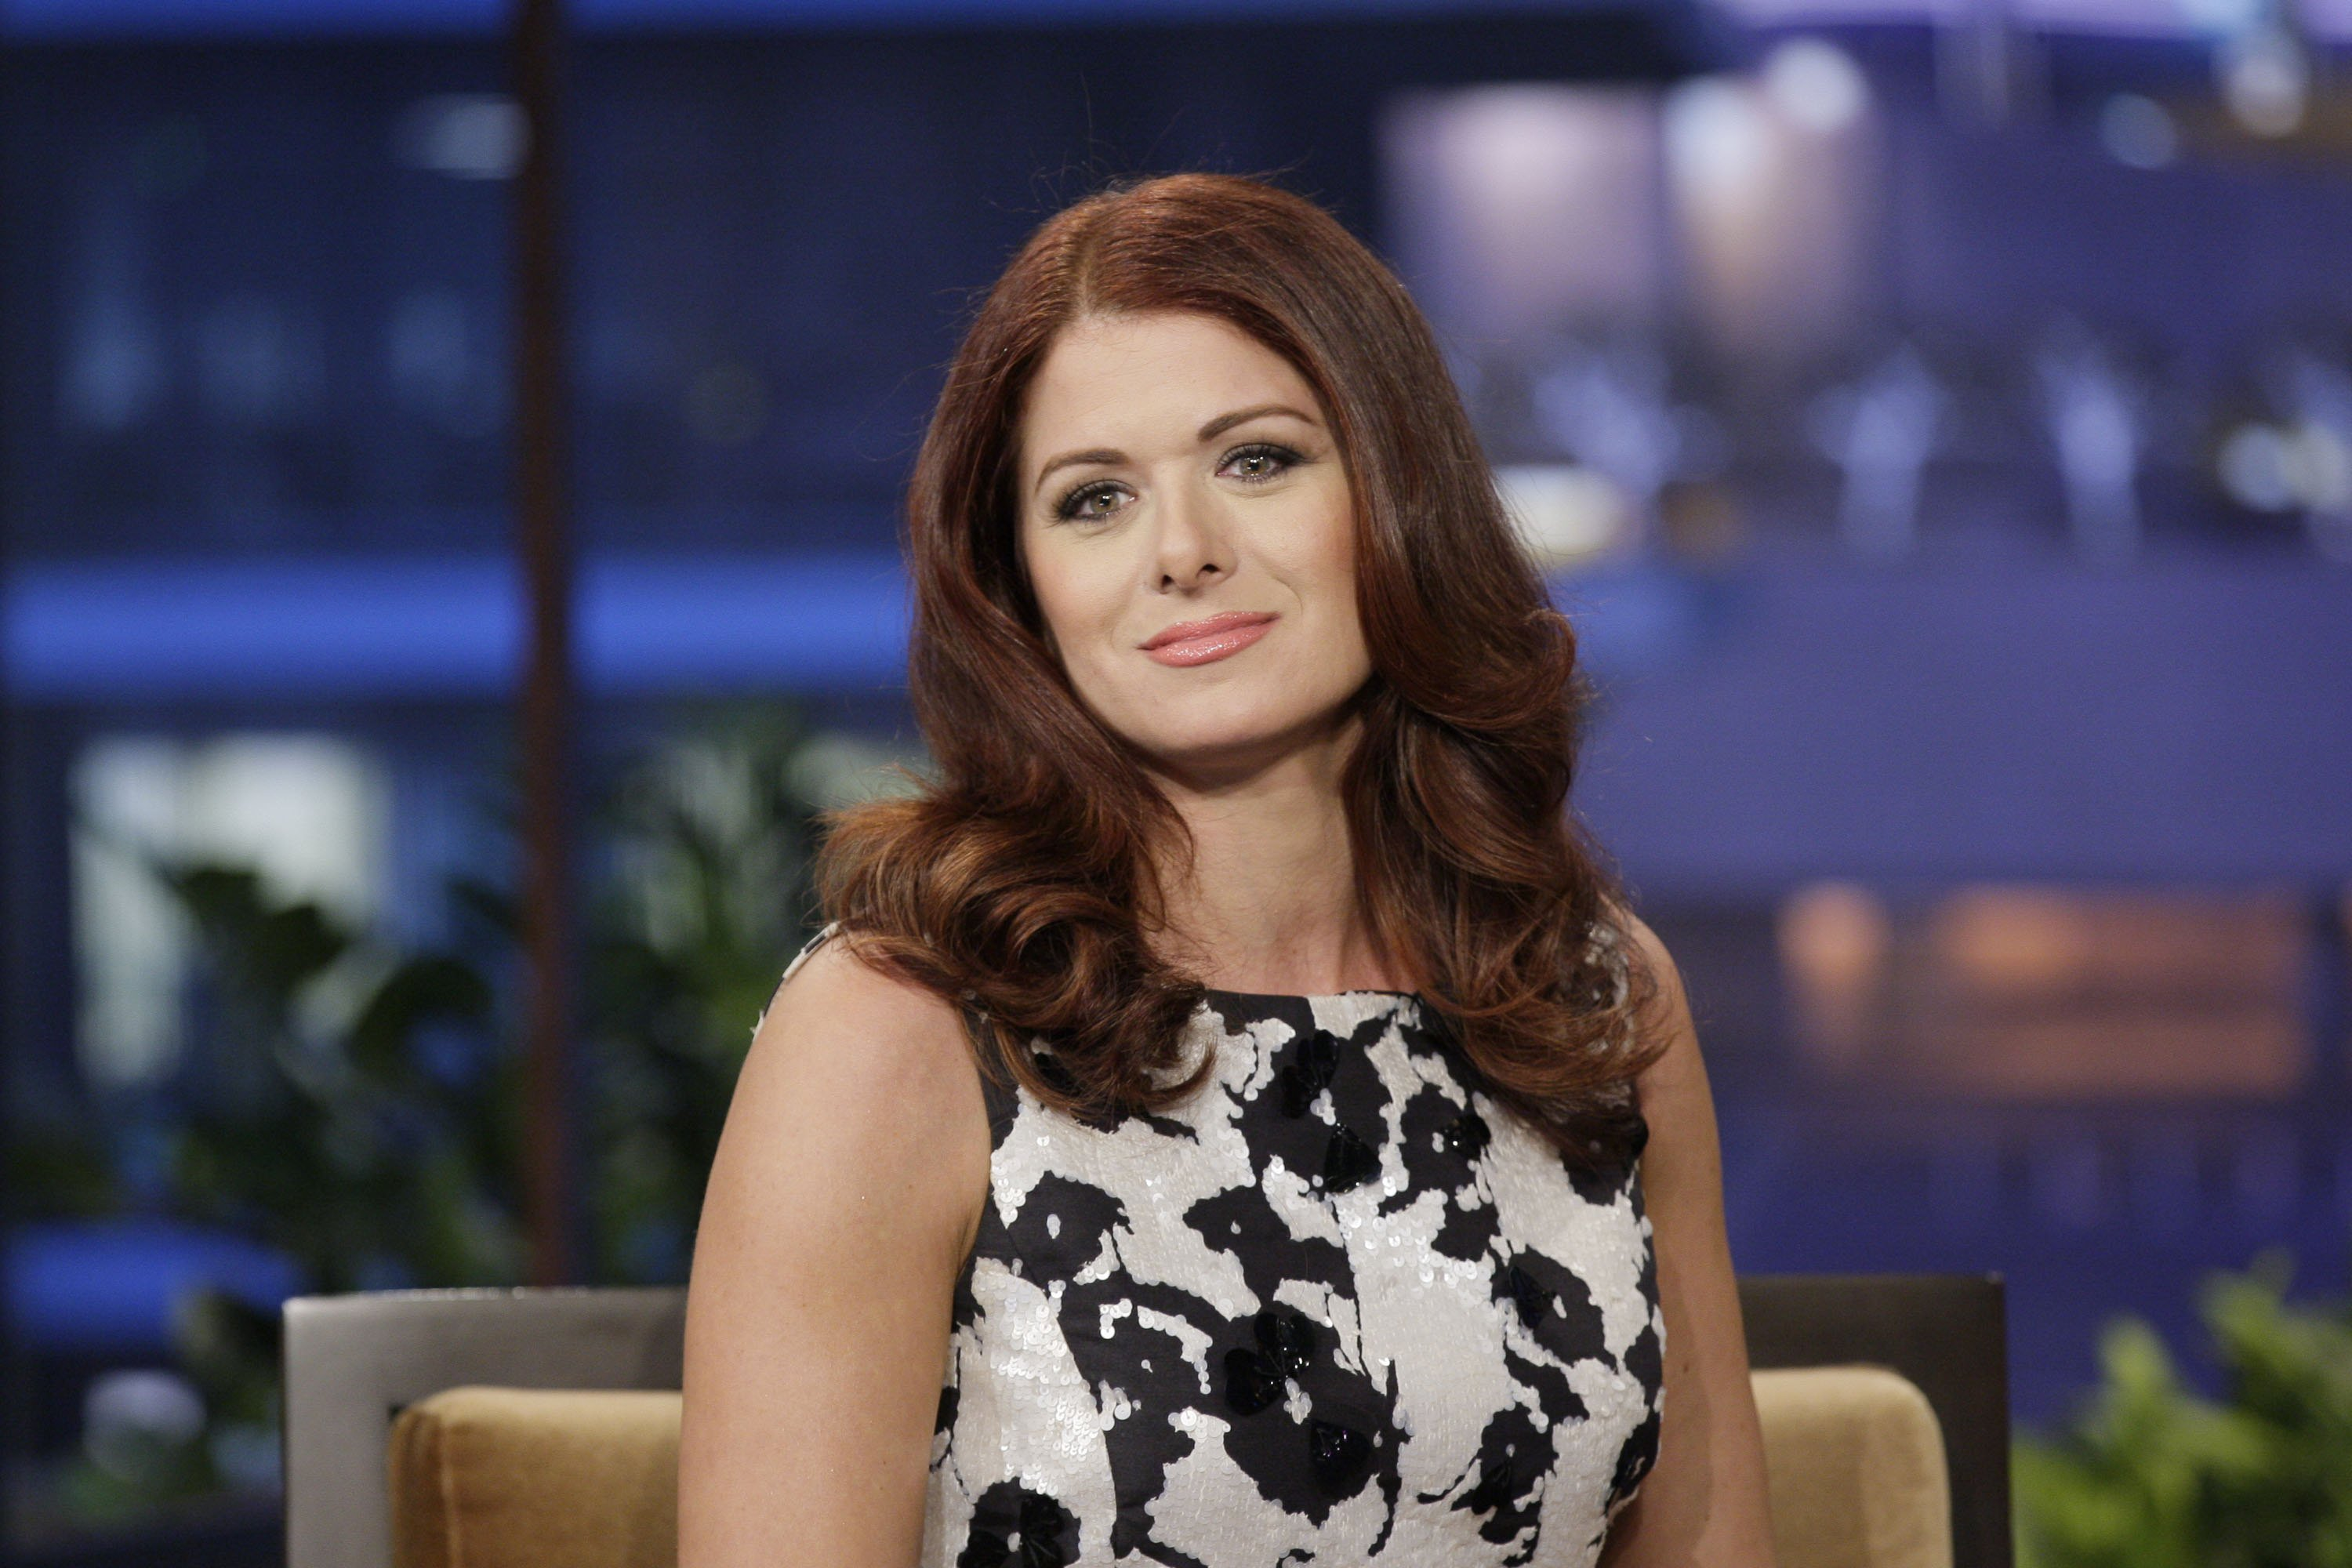 Debra Messing during an interview on February 3, 2012 | Photo: GettyImages